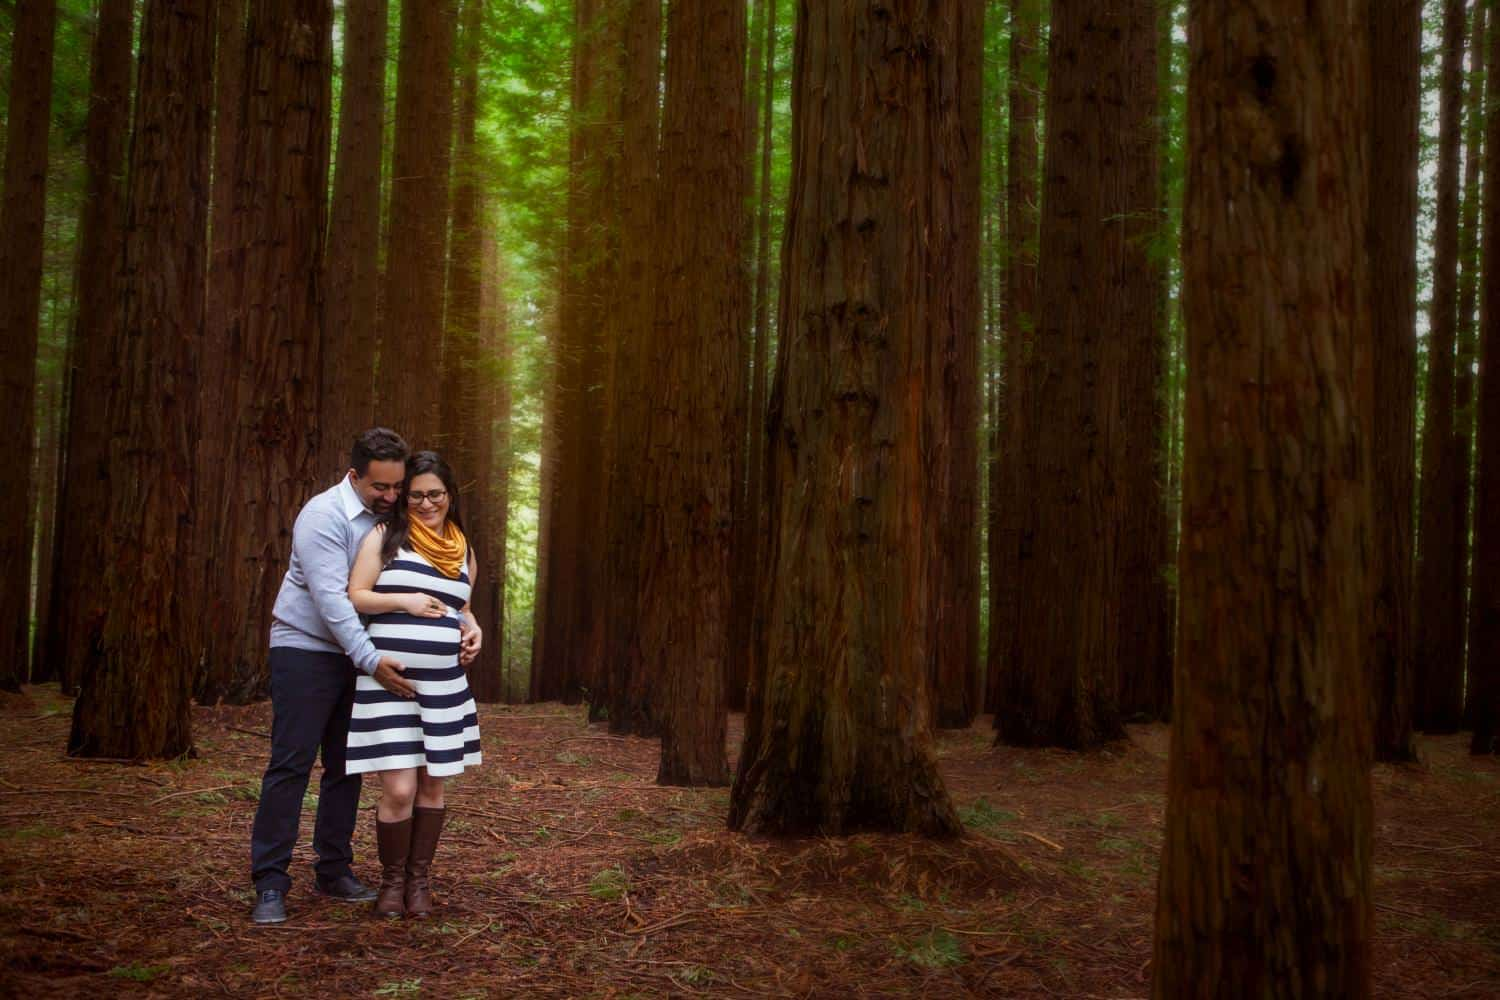 Pregnant woman and partner in a forrest